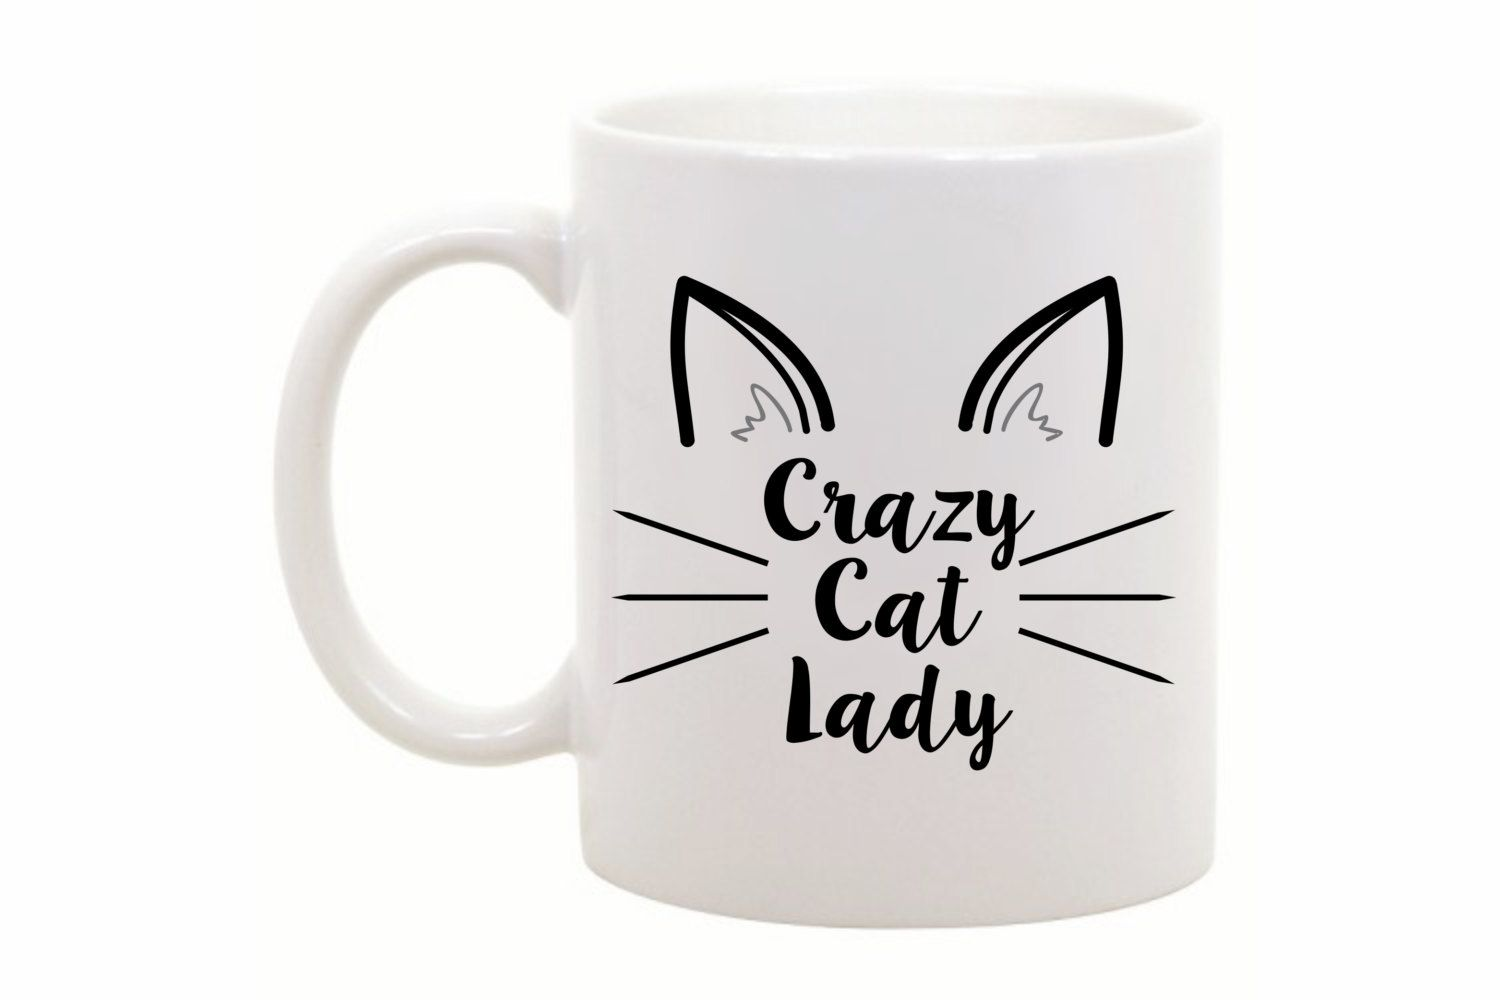 Cat Lover Gift - Funny Cat Mug - Funny Coffee Mug - Funny Coffee Cup - Gift for Cat Owner - Crazy Cat Lady Mug - Funny Gift - Office Gift by TheCoffeeCorner on Etsy